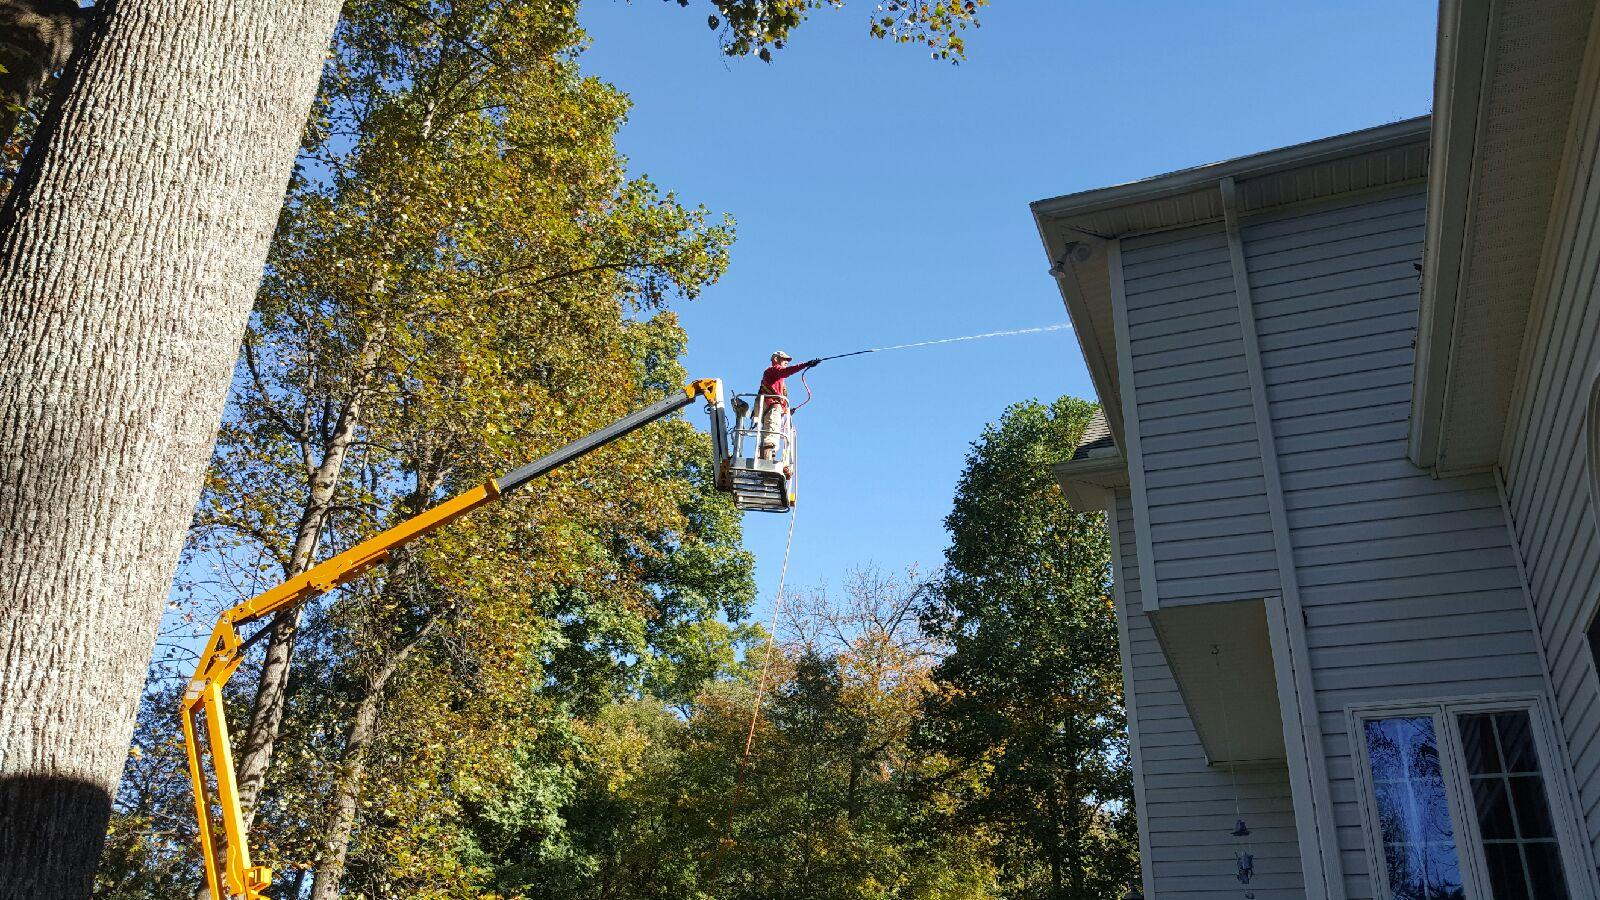 Boom Lift | Pressure Washing Company in Hagerstown MD